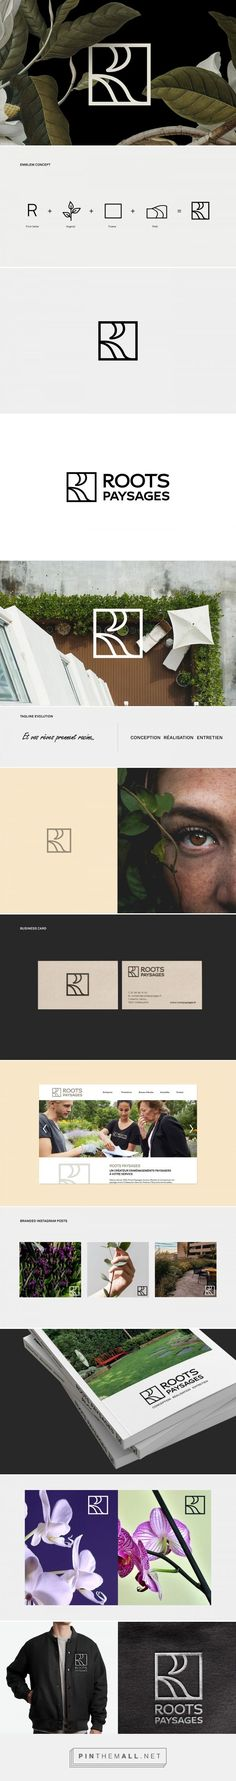 Roots Paysages brand design created by Grapheine